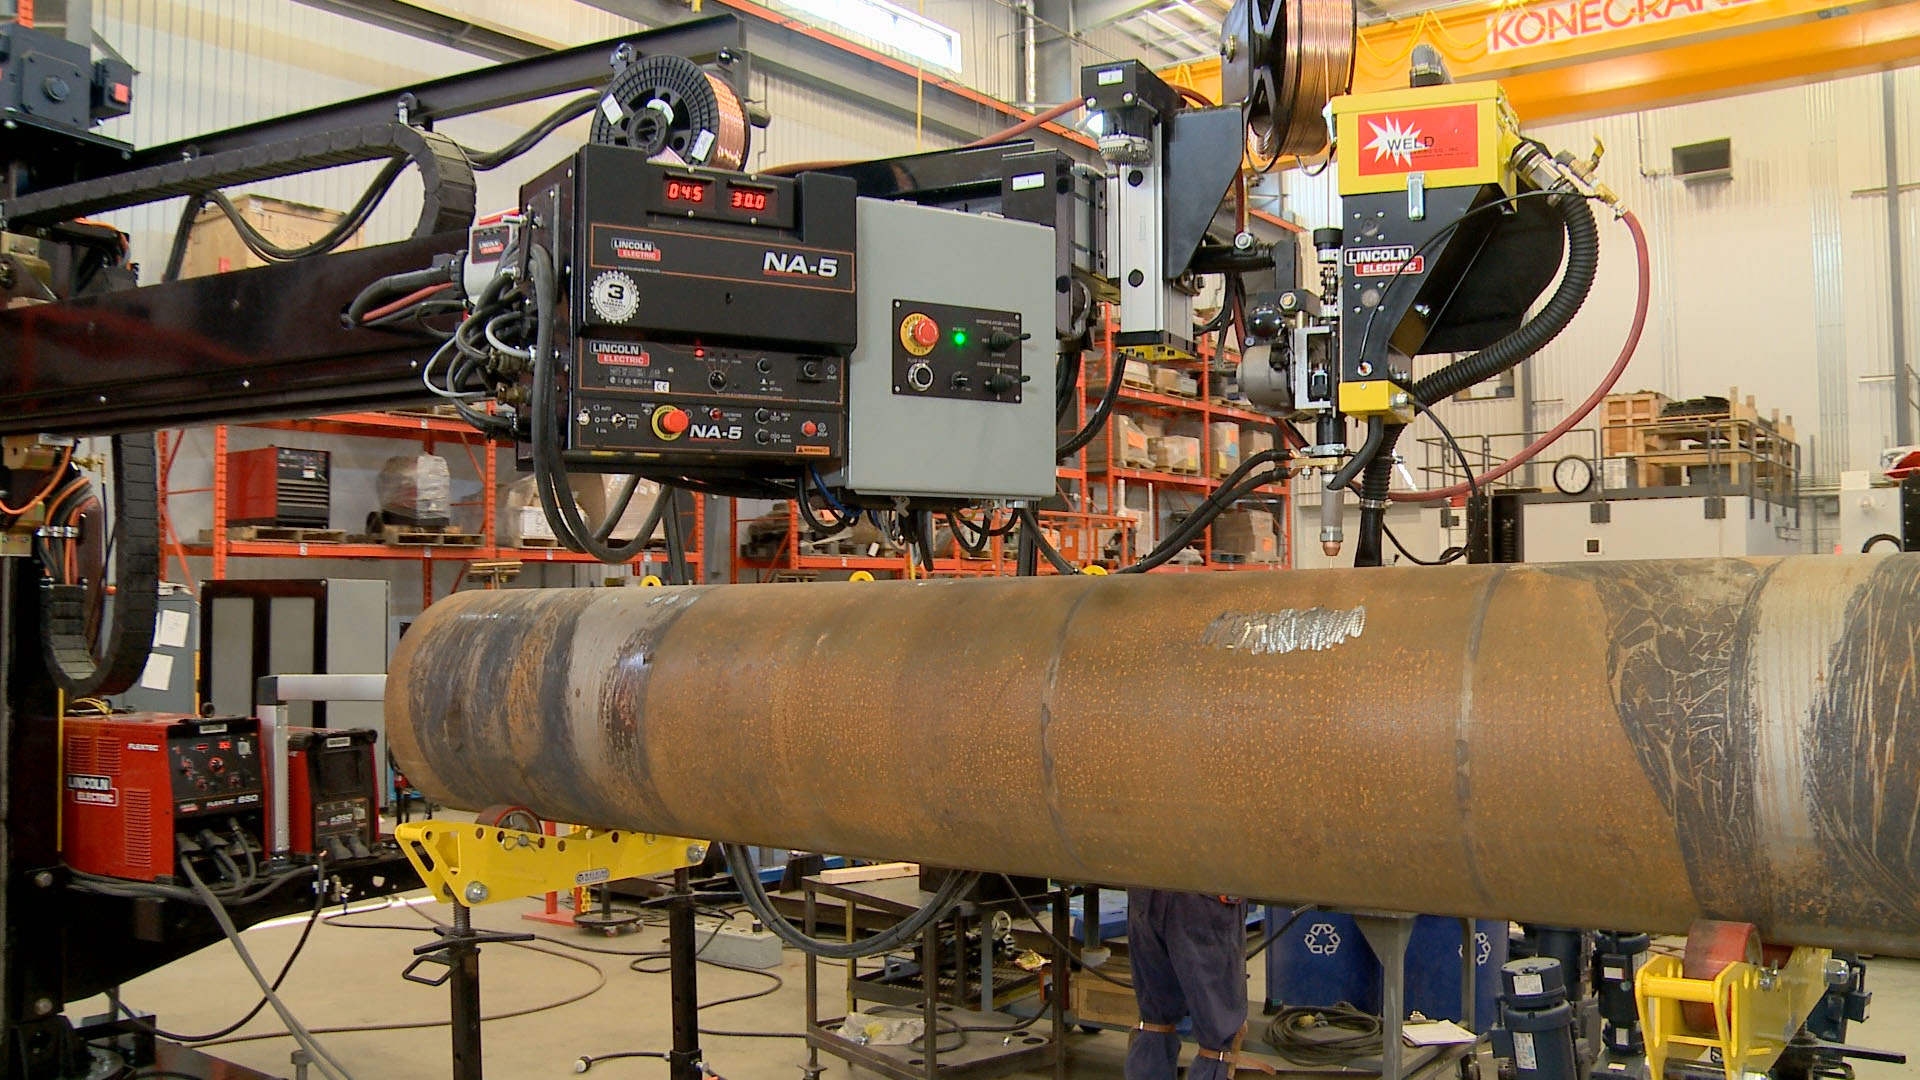 welding boom manipulator controls with roller pipe stands